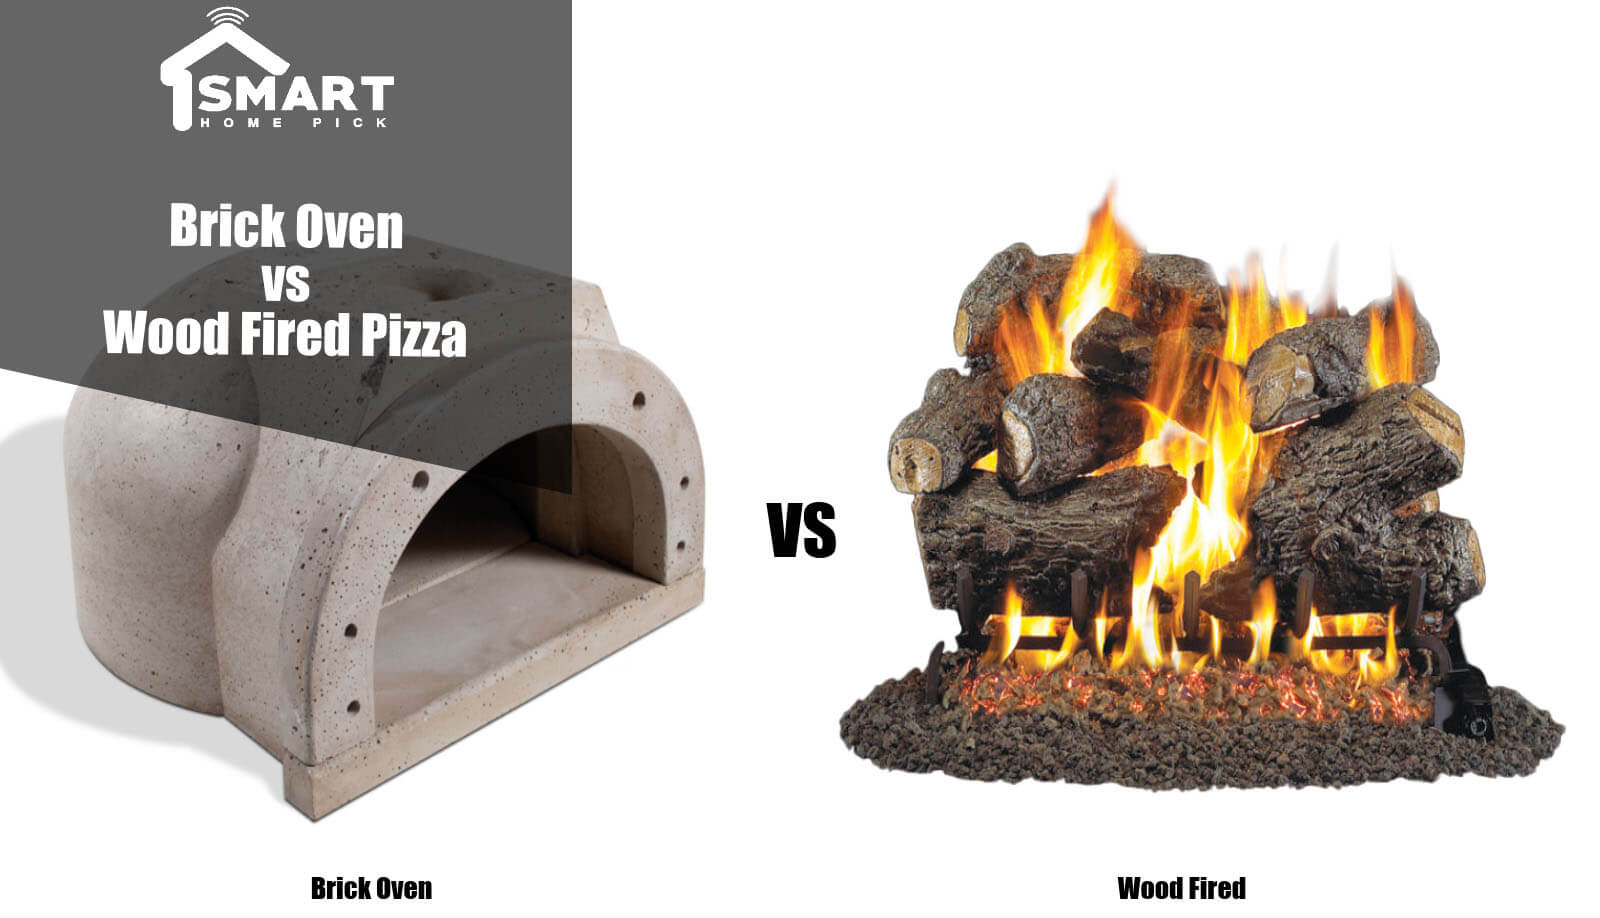 Brick Oven vs Wood Fired Pizza